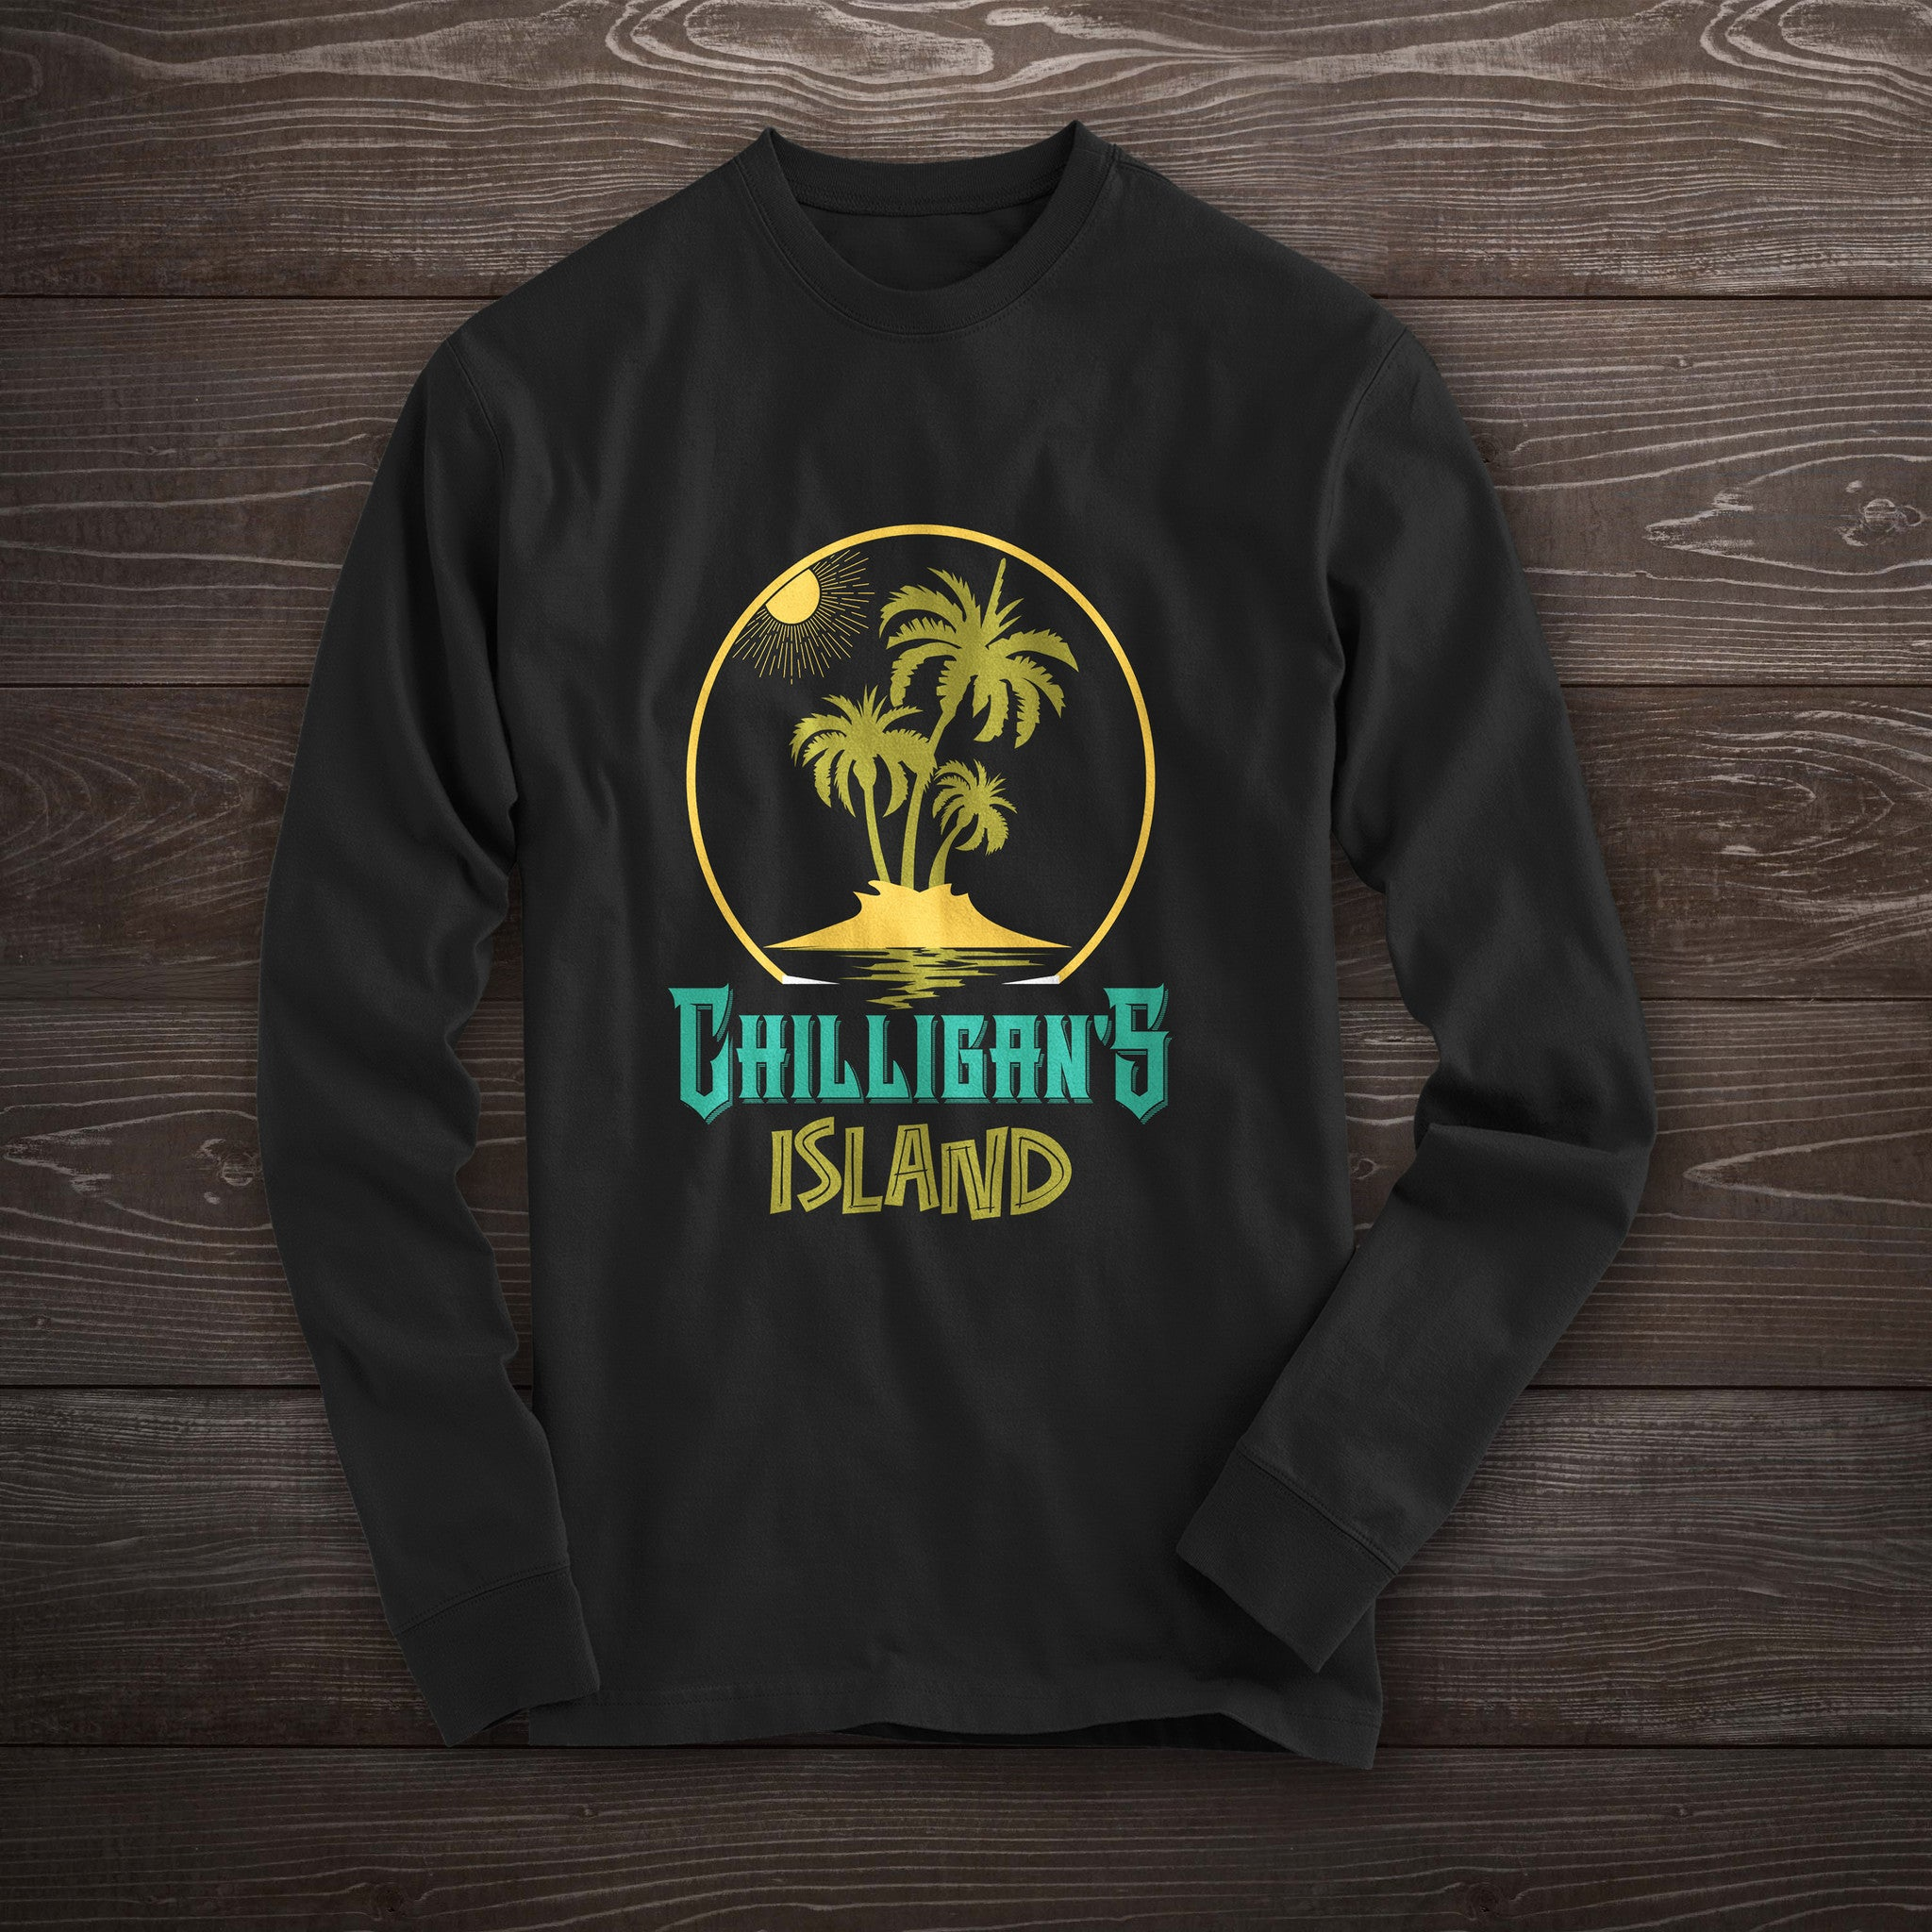 Chilligan's Island - Long Sleeve